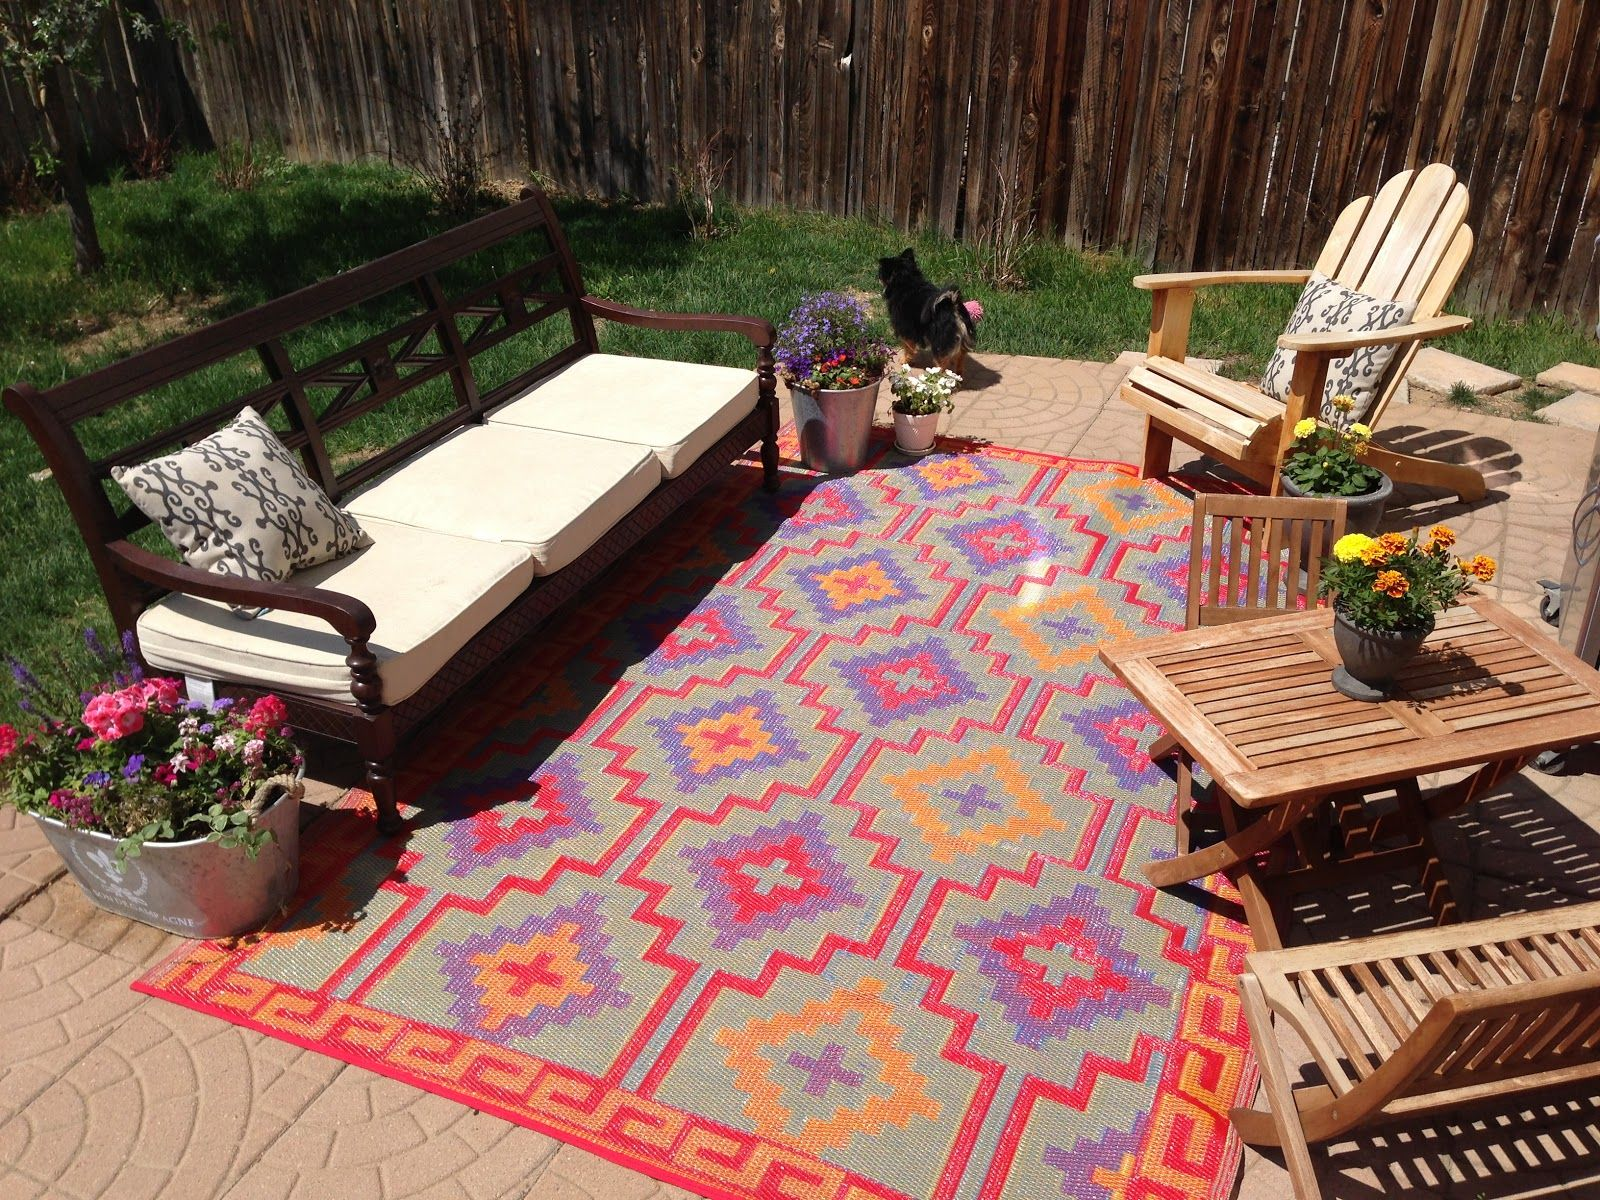 Elegant Outdoor Patio Rug Colors   Http://outdoor.taylorectorstudios.com/outdoor  Patio Rug Colors/ : #OutdoorFurniture Outdoor Patio Rug U2013 Siding Is  Different ...